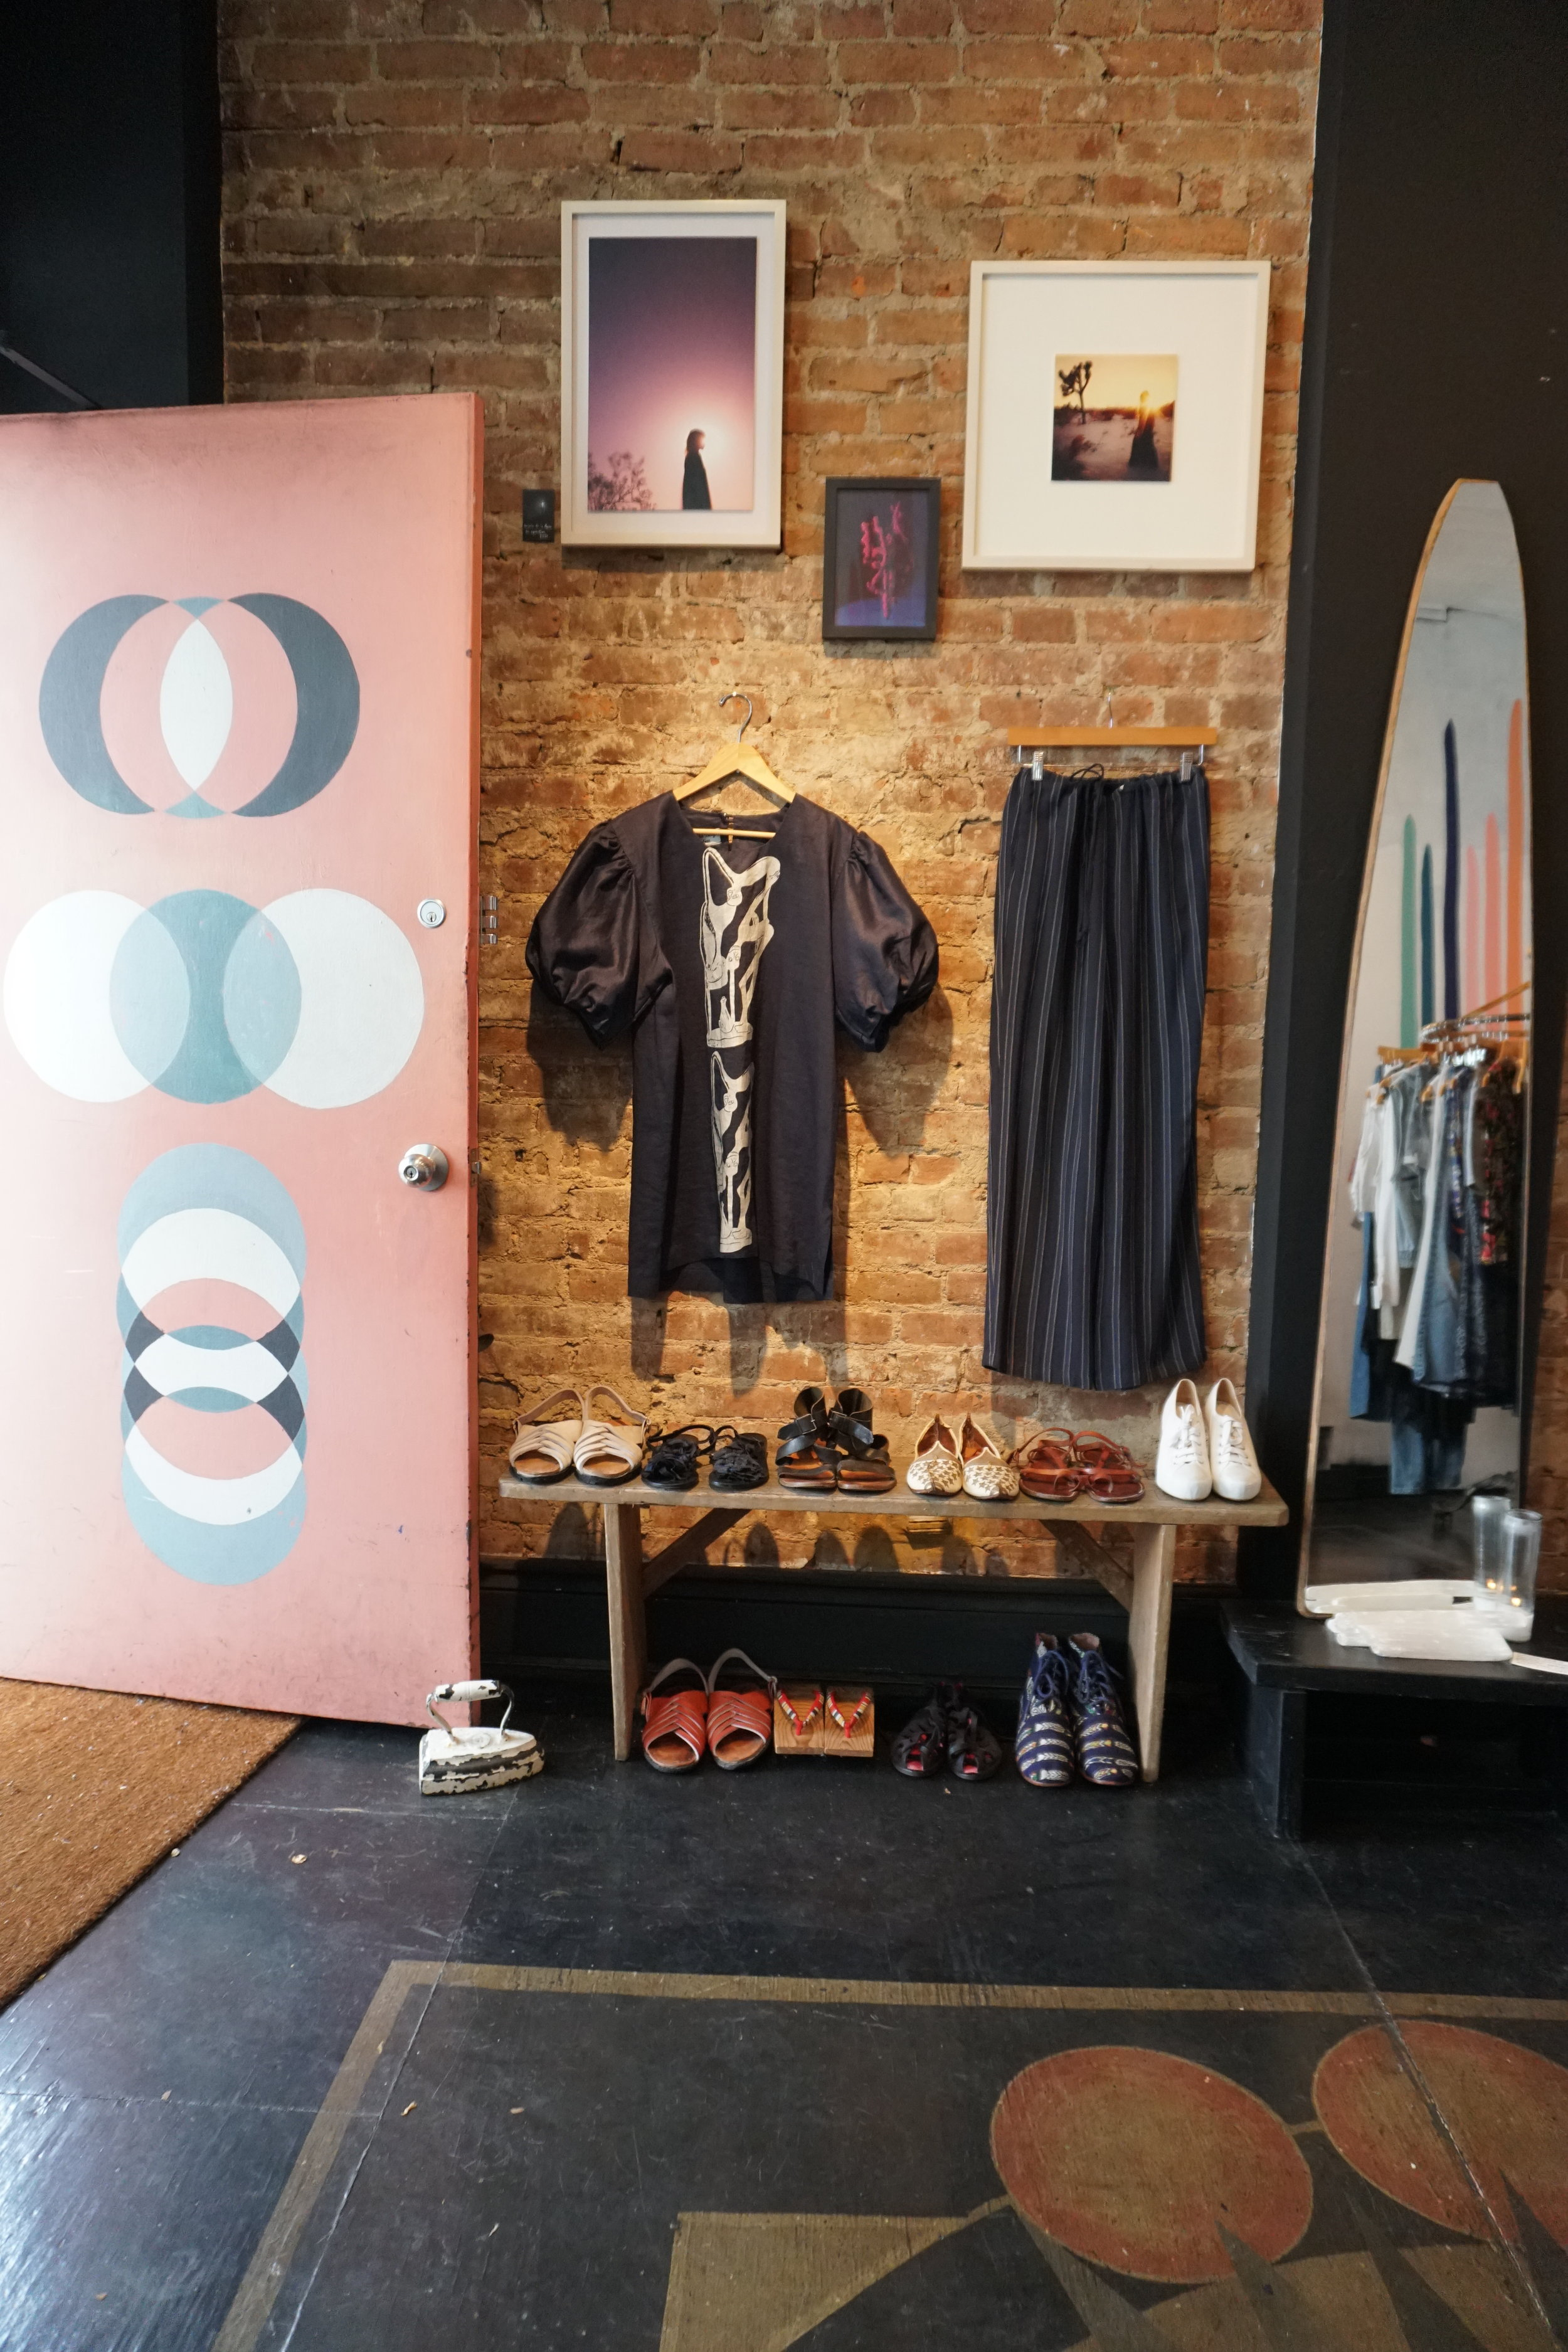 The Best Vintage Stores in Williamsburg, Brooklyn - The